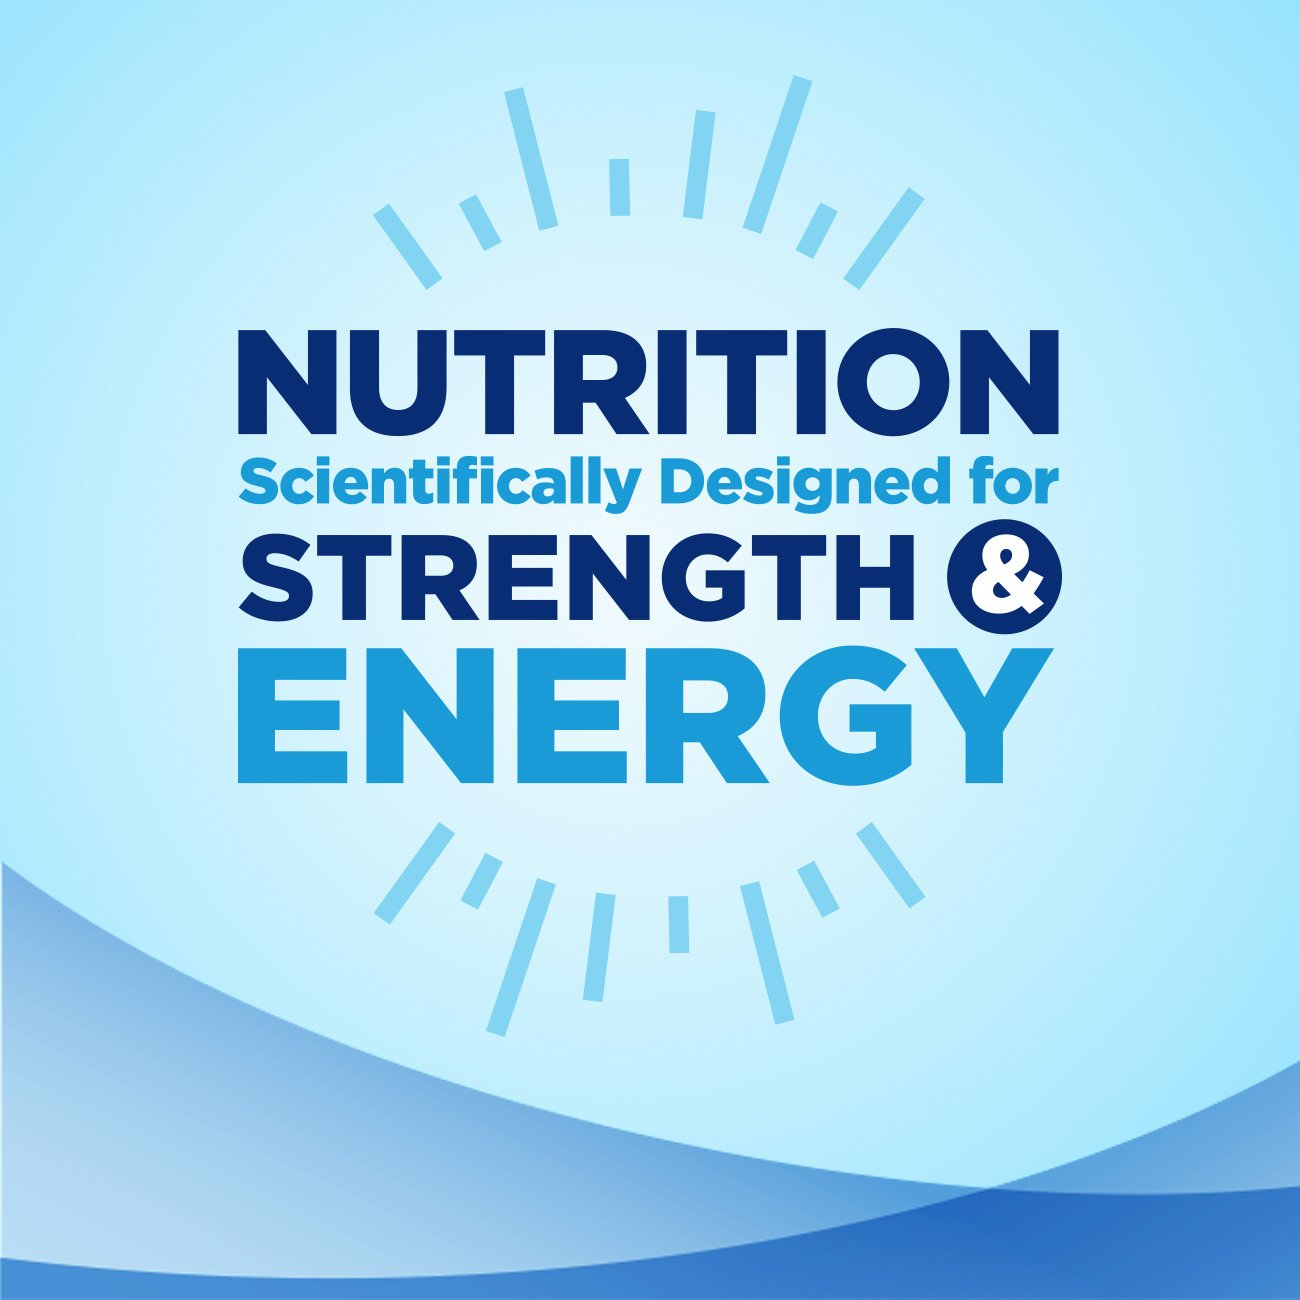 Ensure Original Nutrition Powder with 9 grams of protein, Meal Replacement, Vanilla, 14 oz, 6 count by Ensure (Image #5)